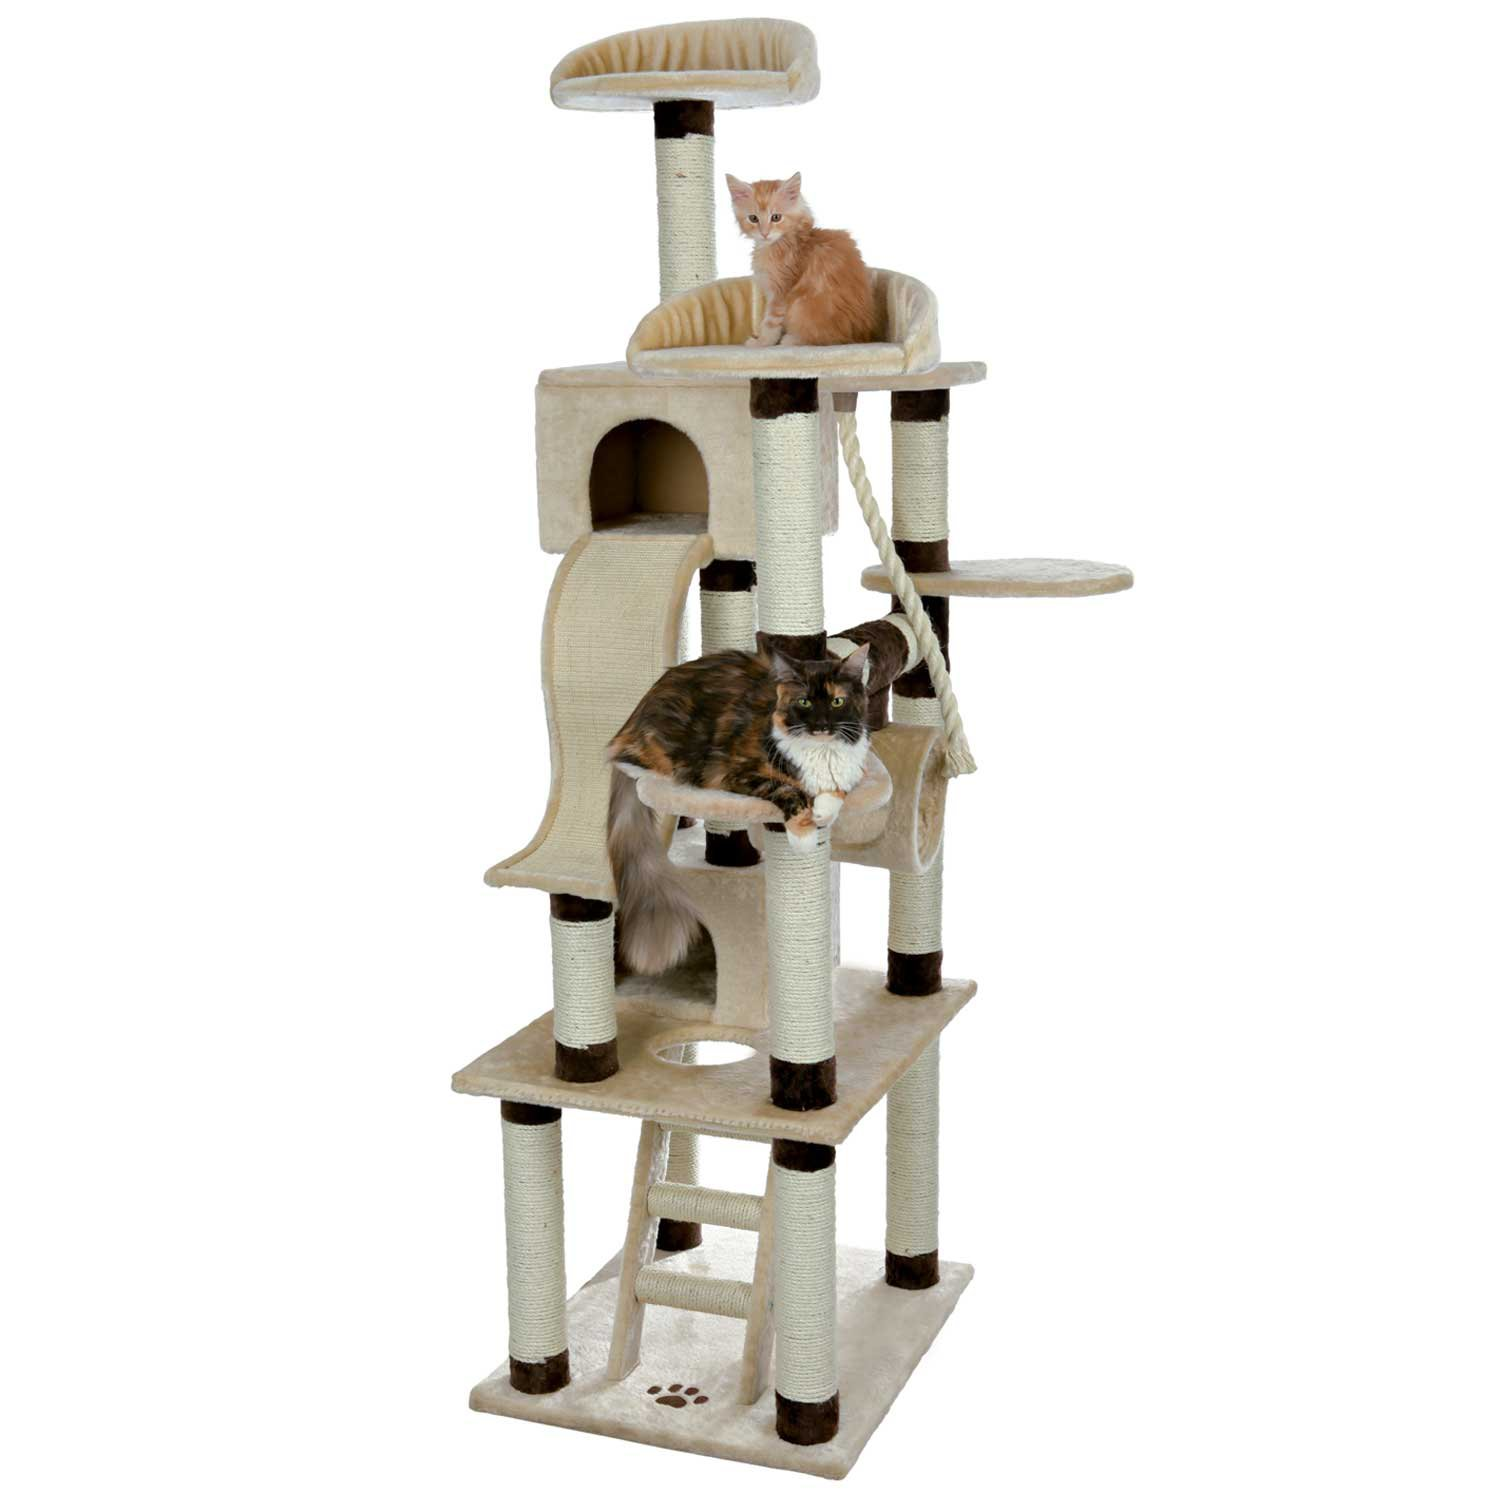 Trixie Adiva Cat Playground in Beige & Chocolate Brown